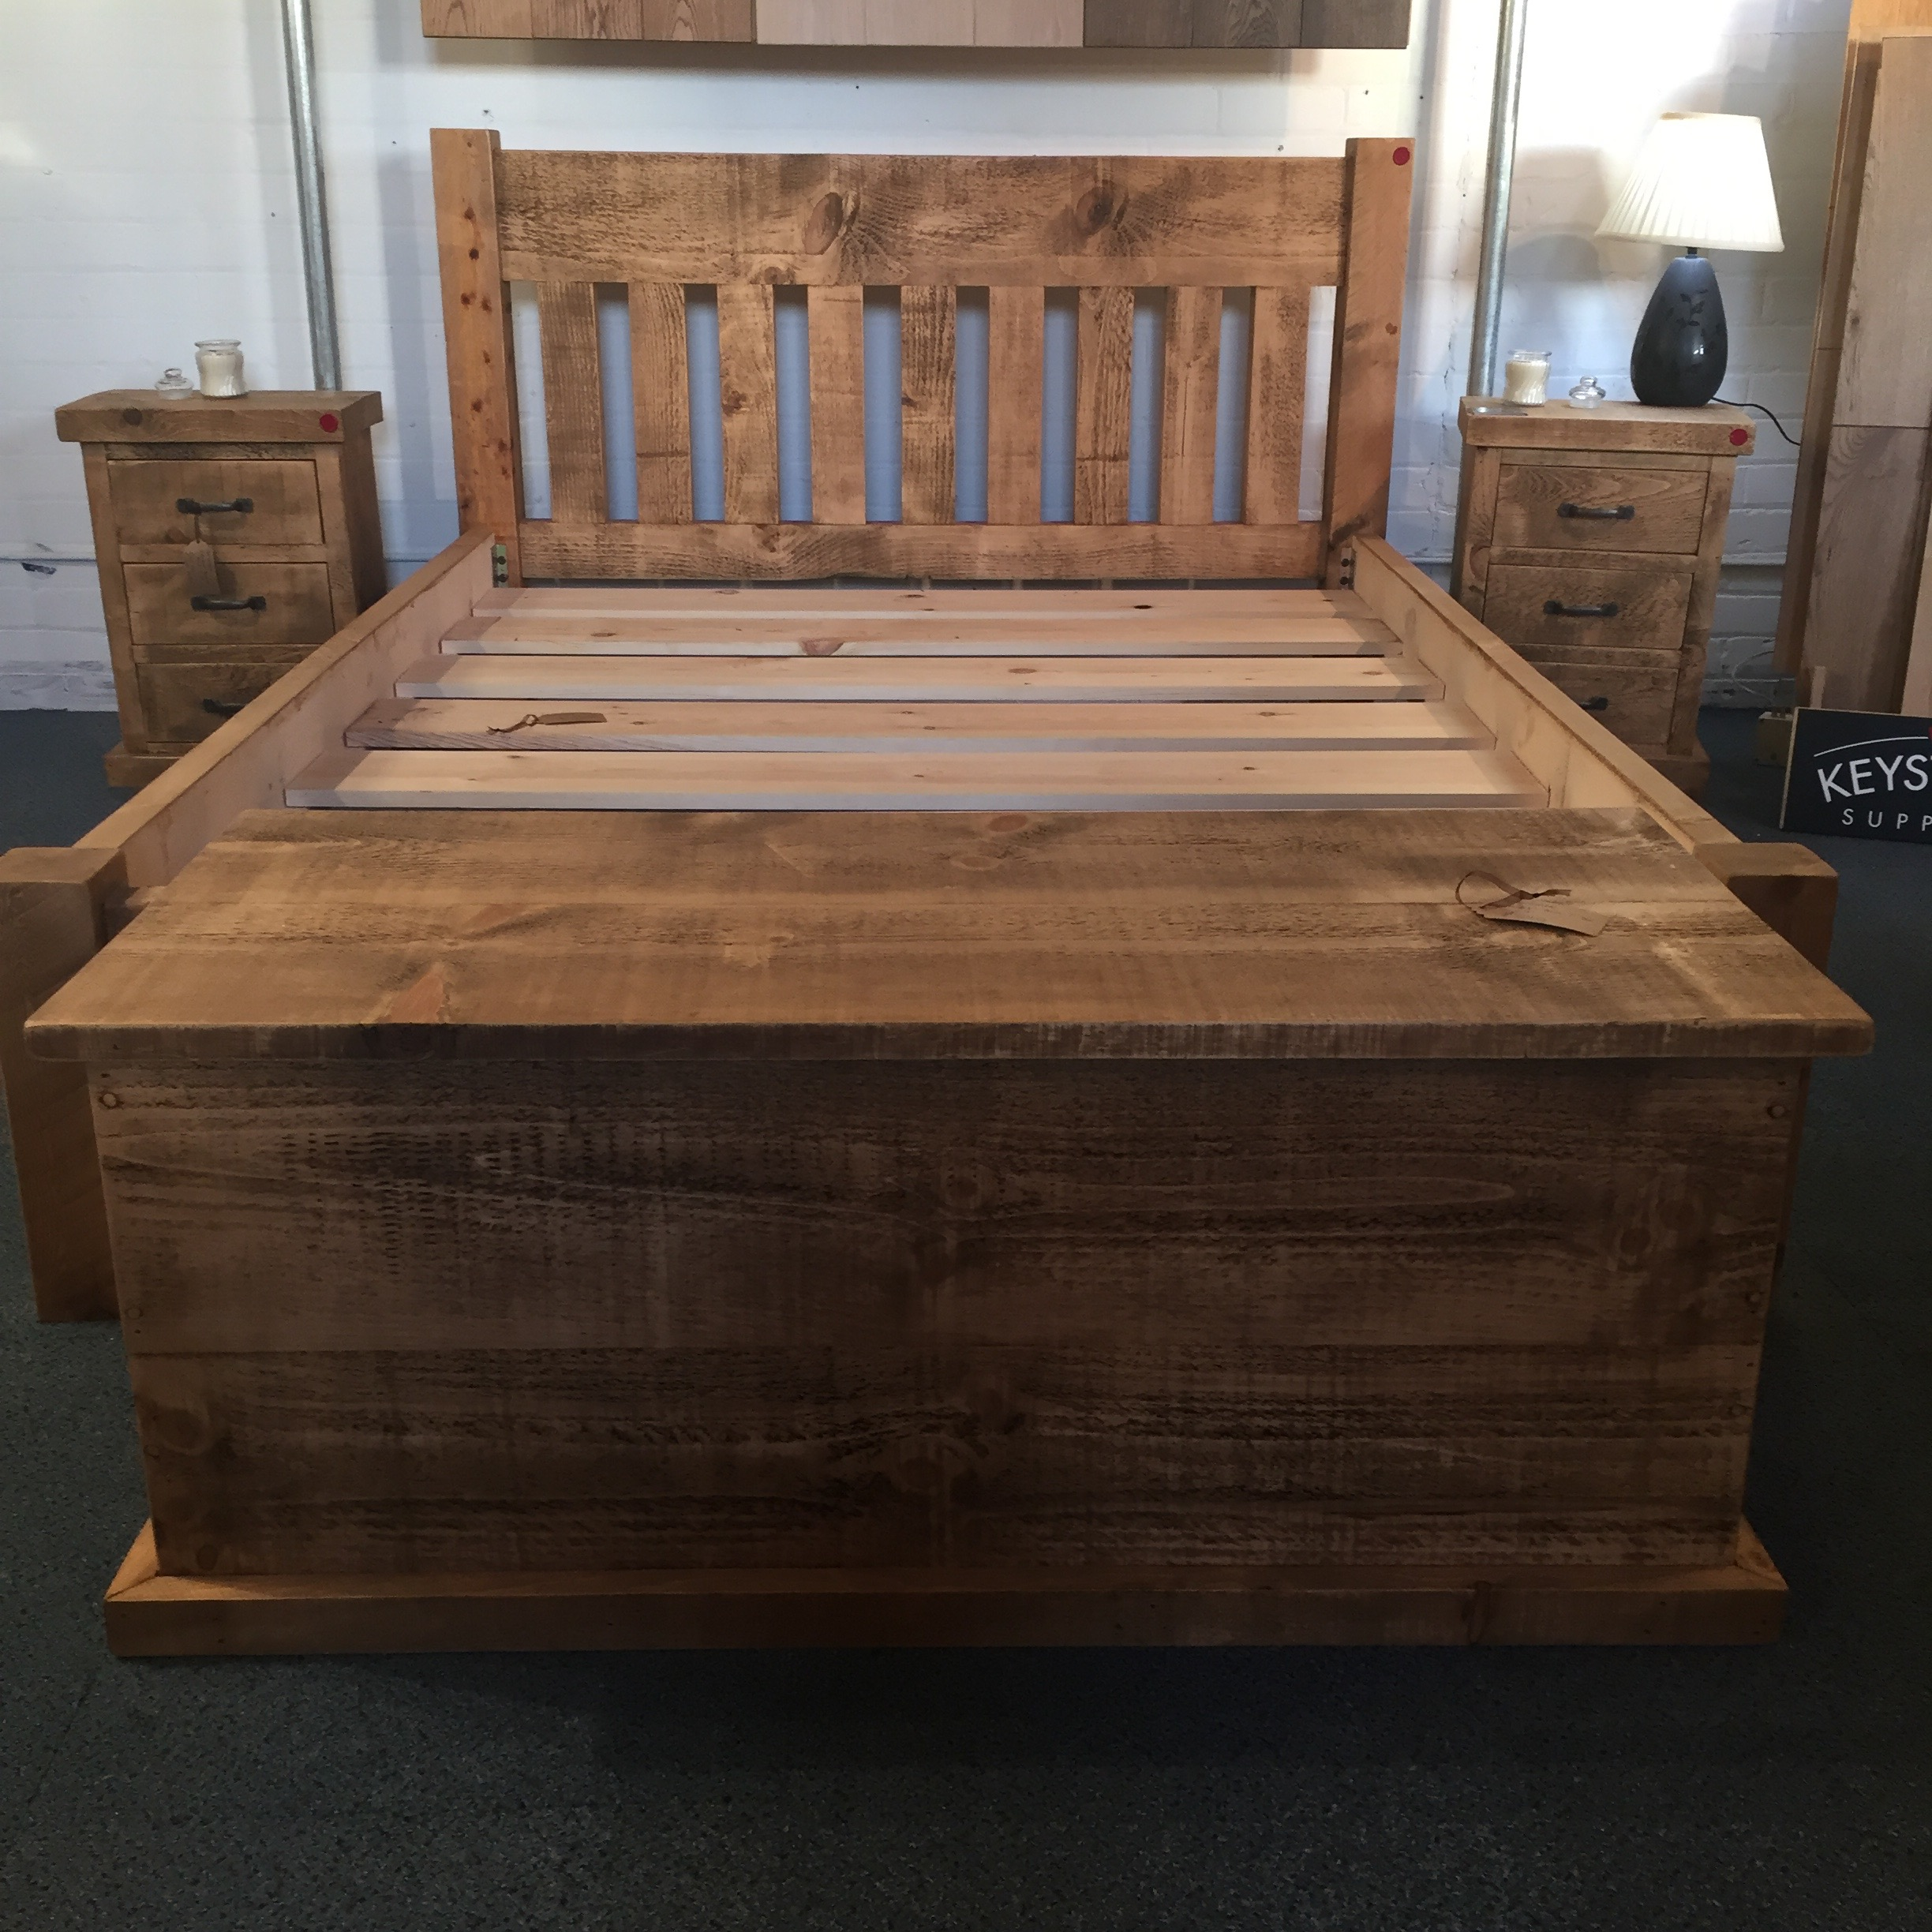 Handmade blanket box